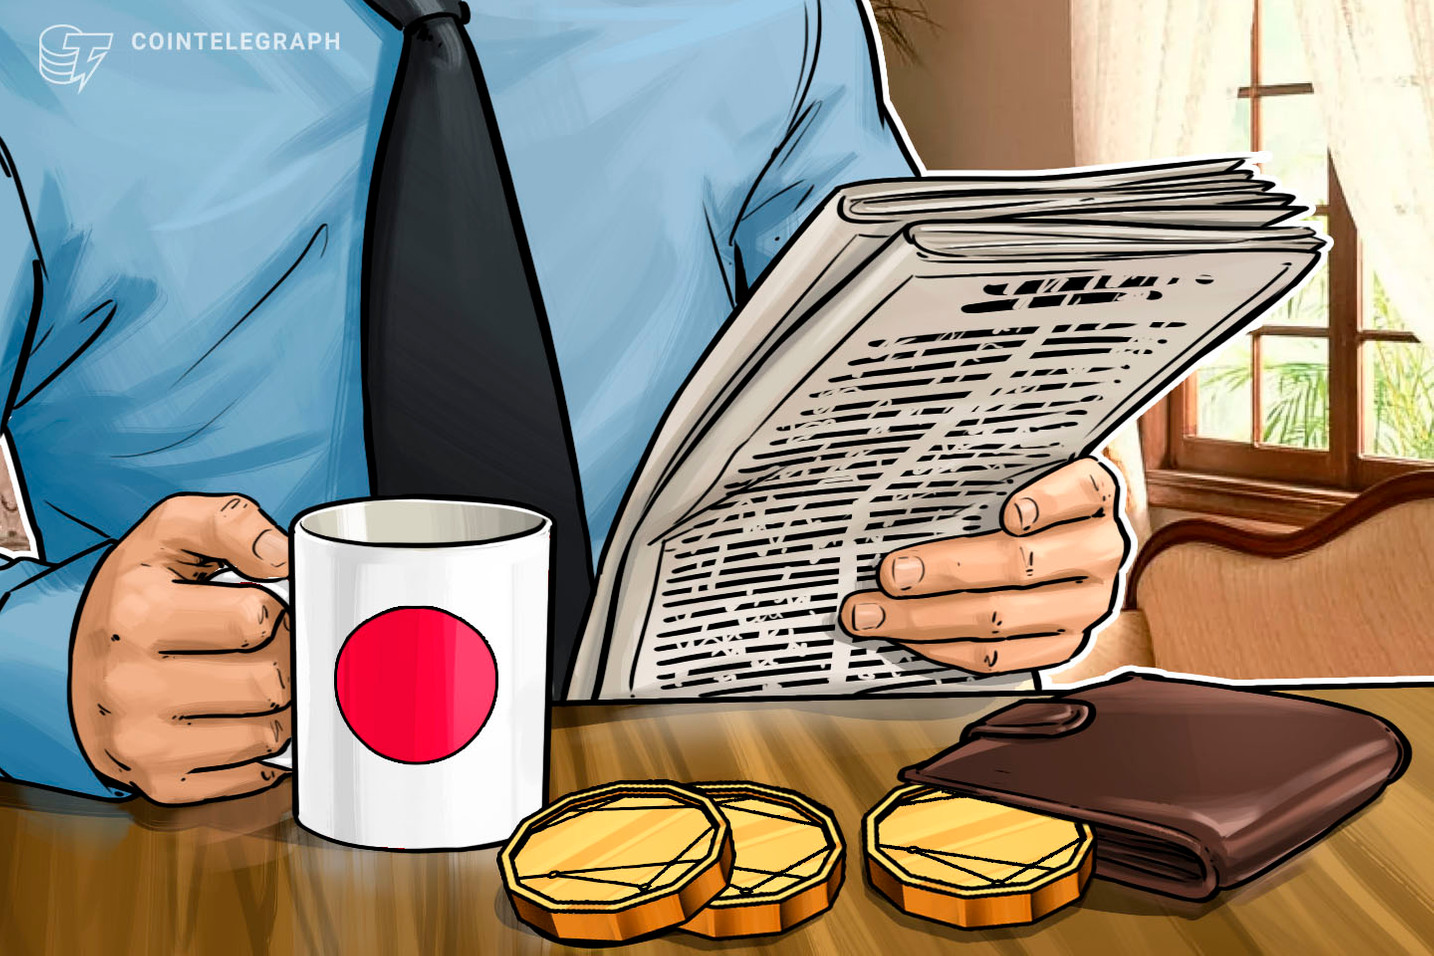 Japan's Top Idol Just Became the New Face of BitFlyer Crypto Exchange